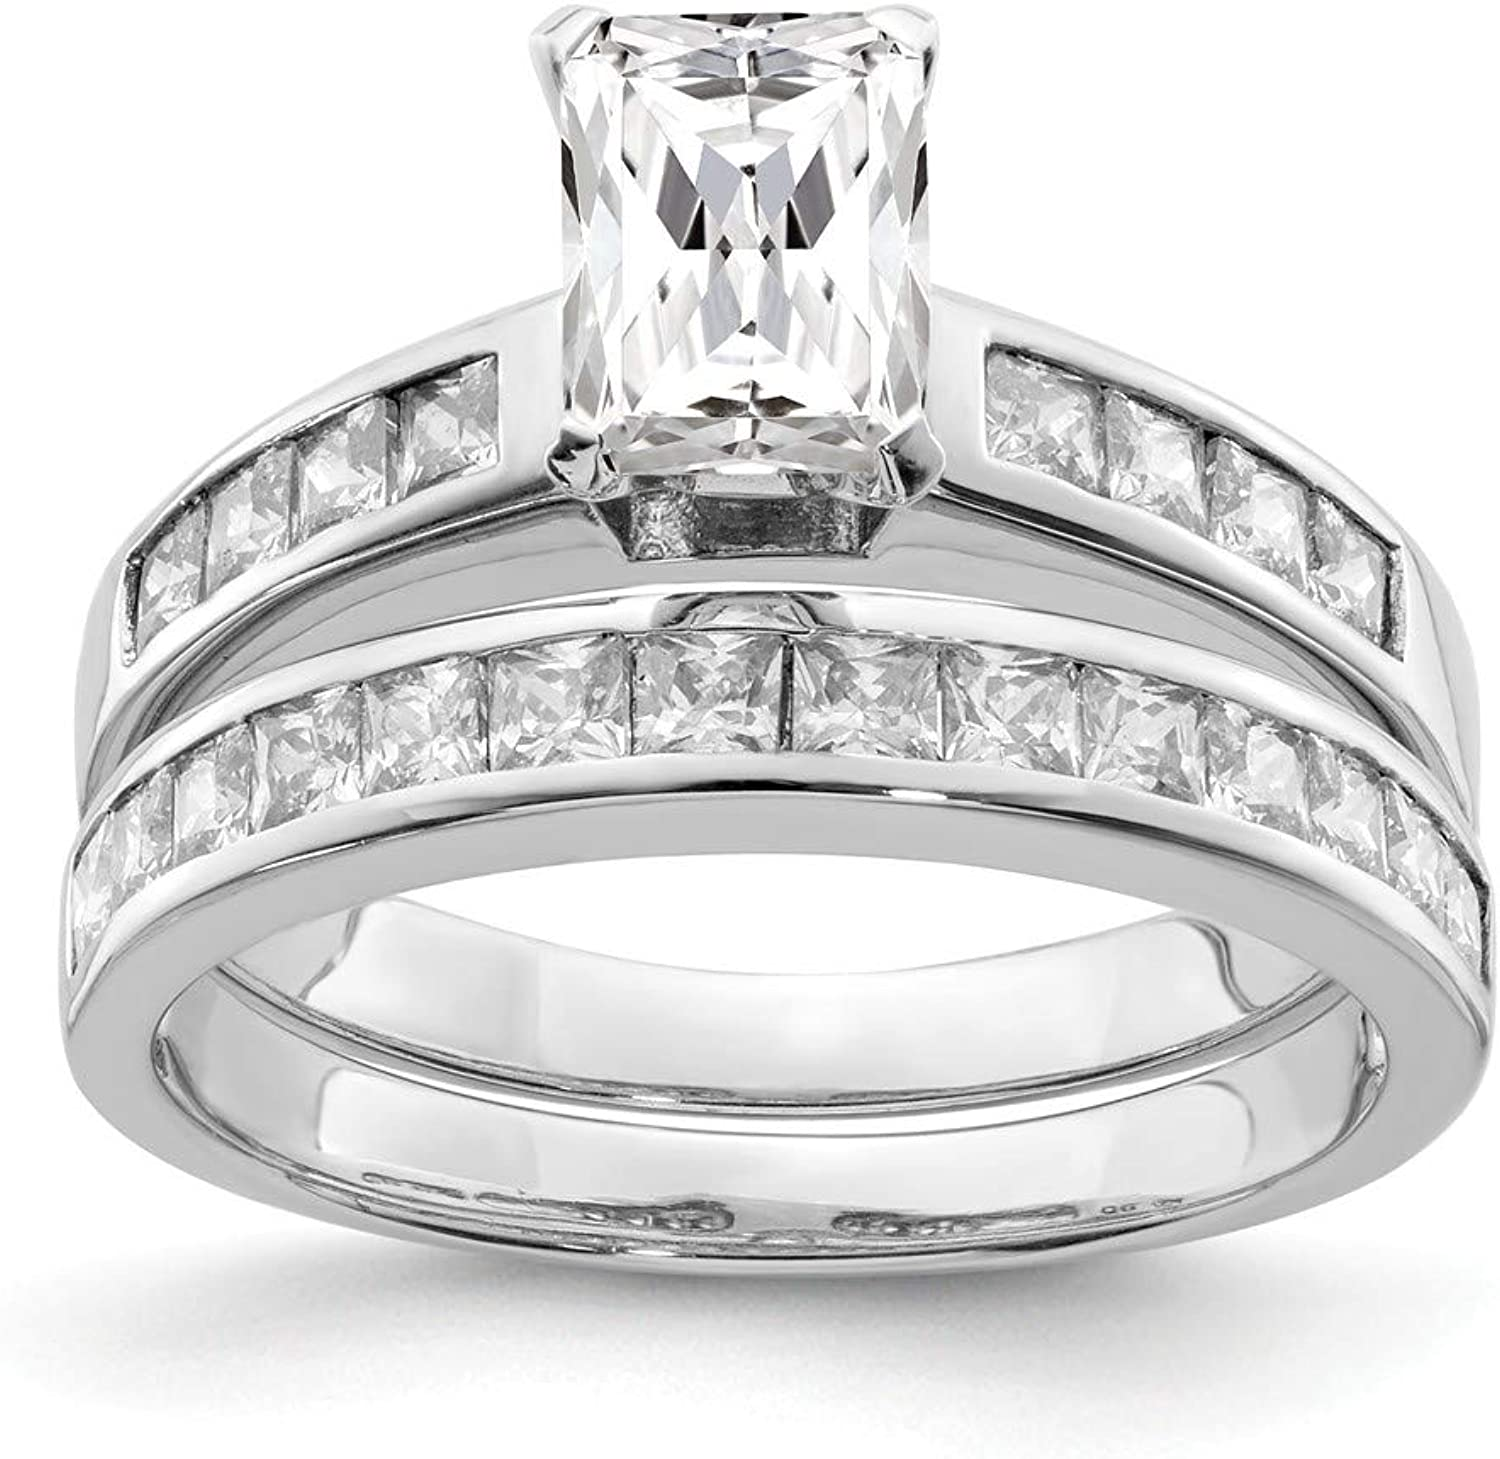 Beautiful Sterling silver 925 sterling Sterling Silver Rhodiumplated 2Piece CZ Size 8 Wedding Set Ring